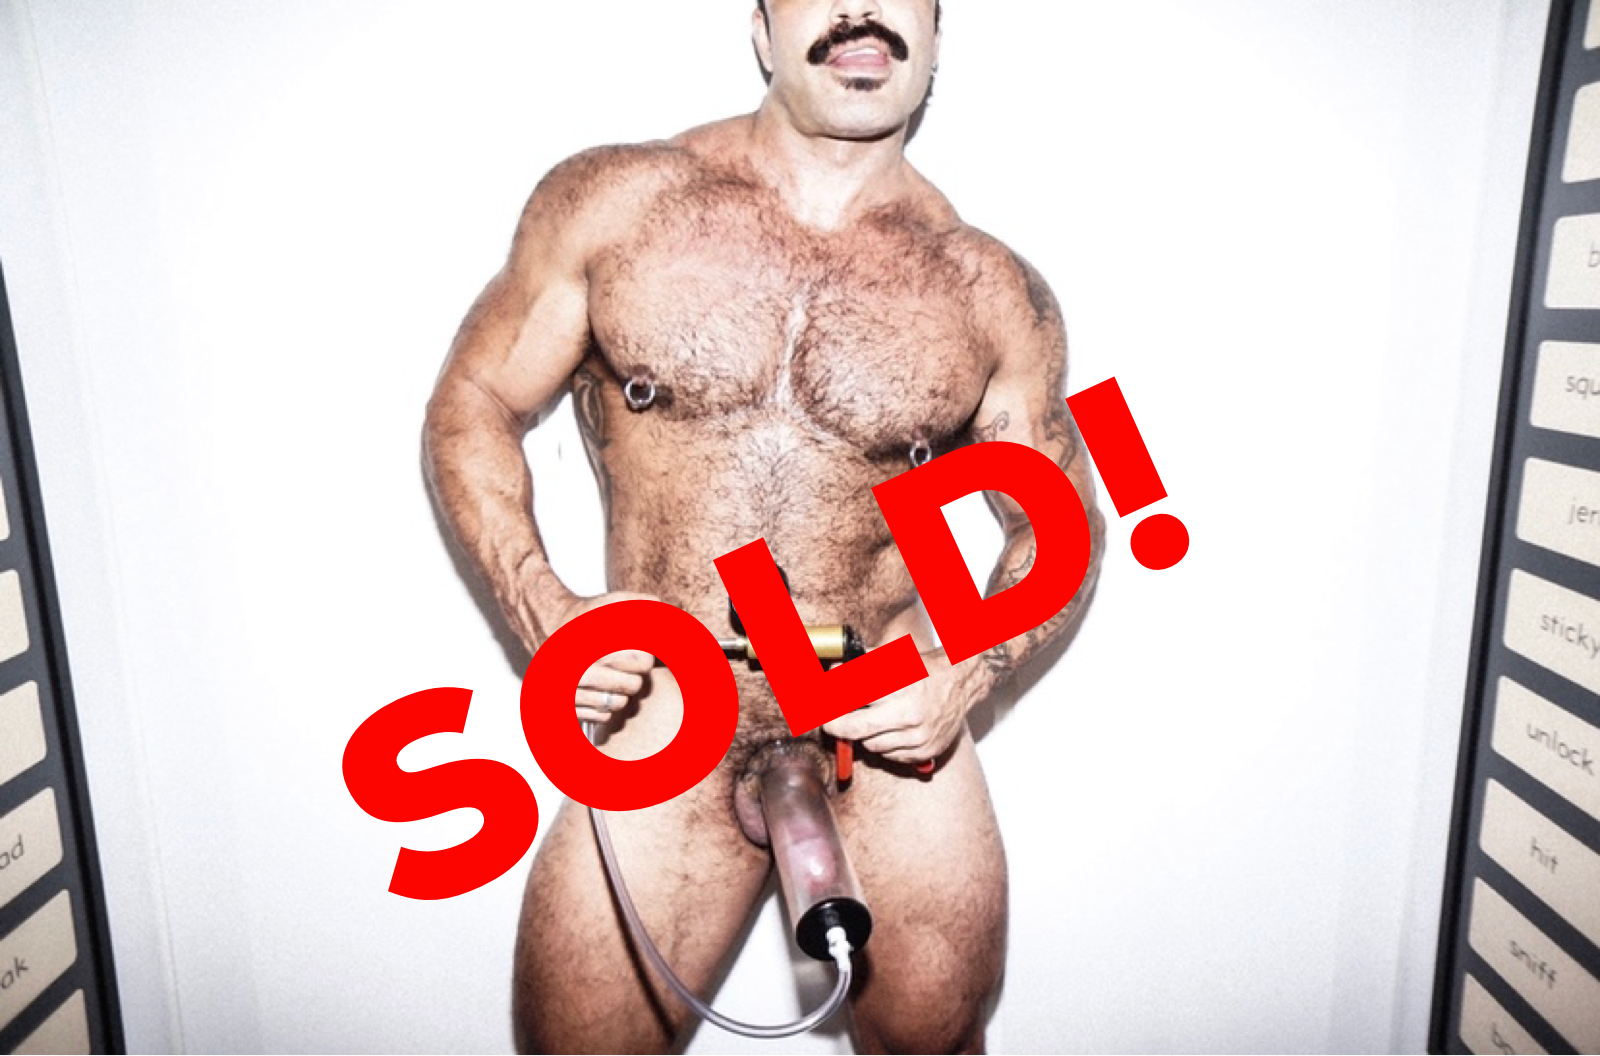 My very first DICK PUMP up for sale! 24hrs for MEMBERS ONLY!